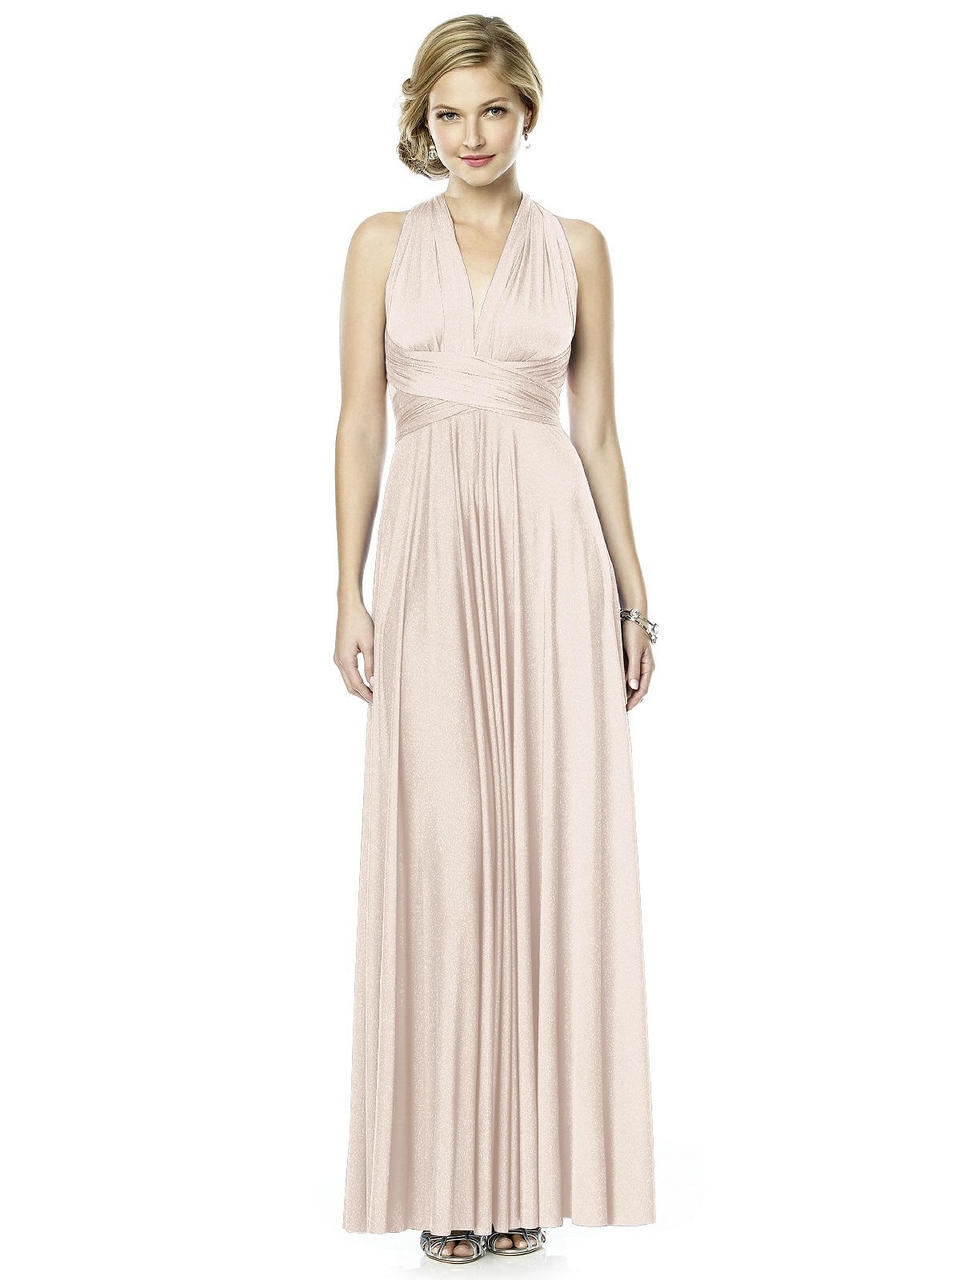 Dessy Collection Shimmertw Dress In Blush Gold In Pink Save 25 Lyst